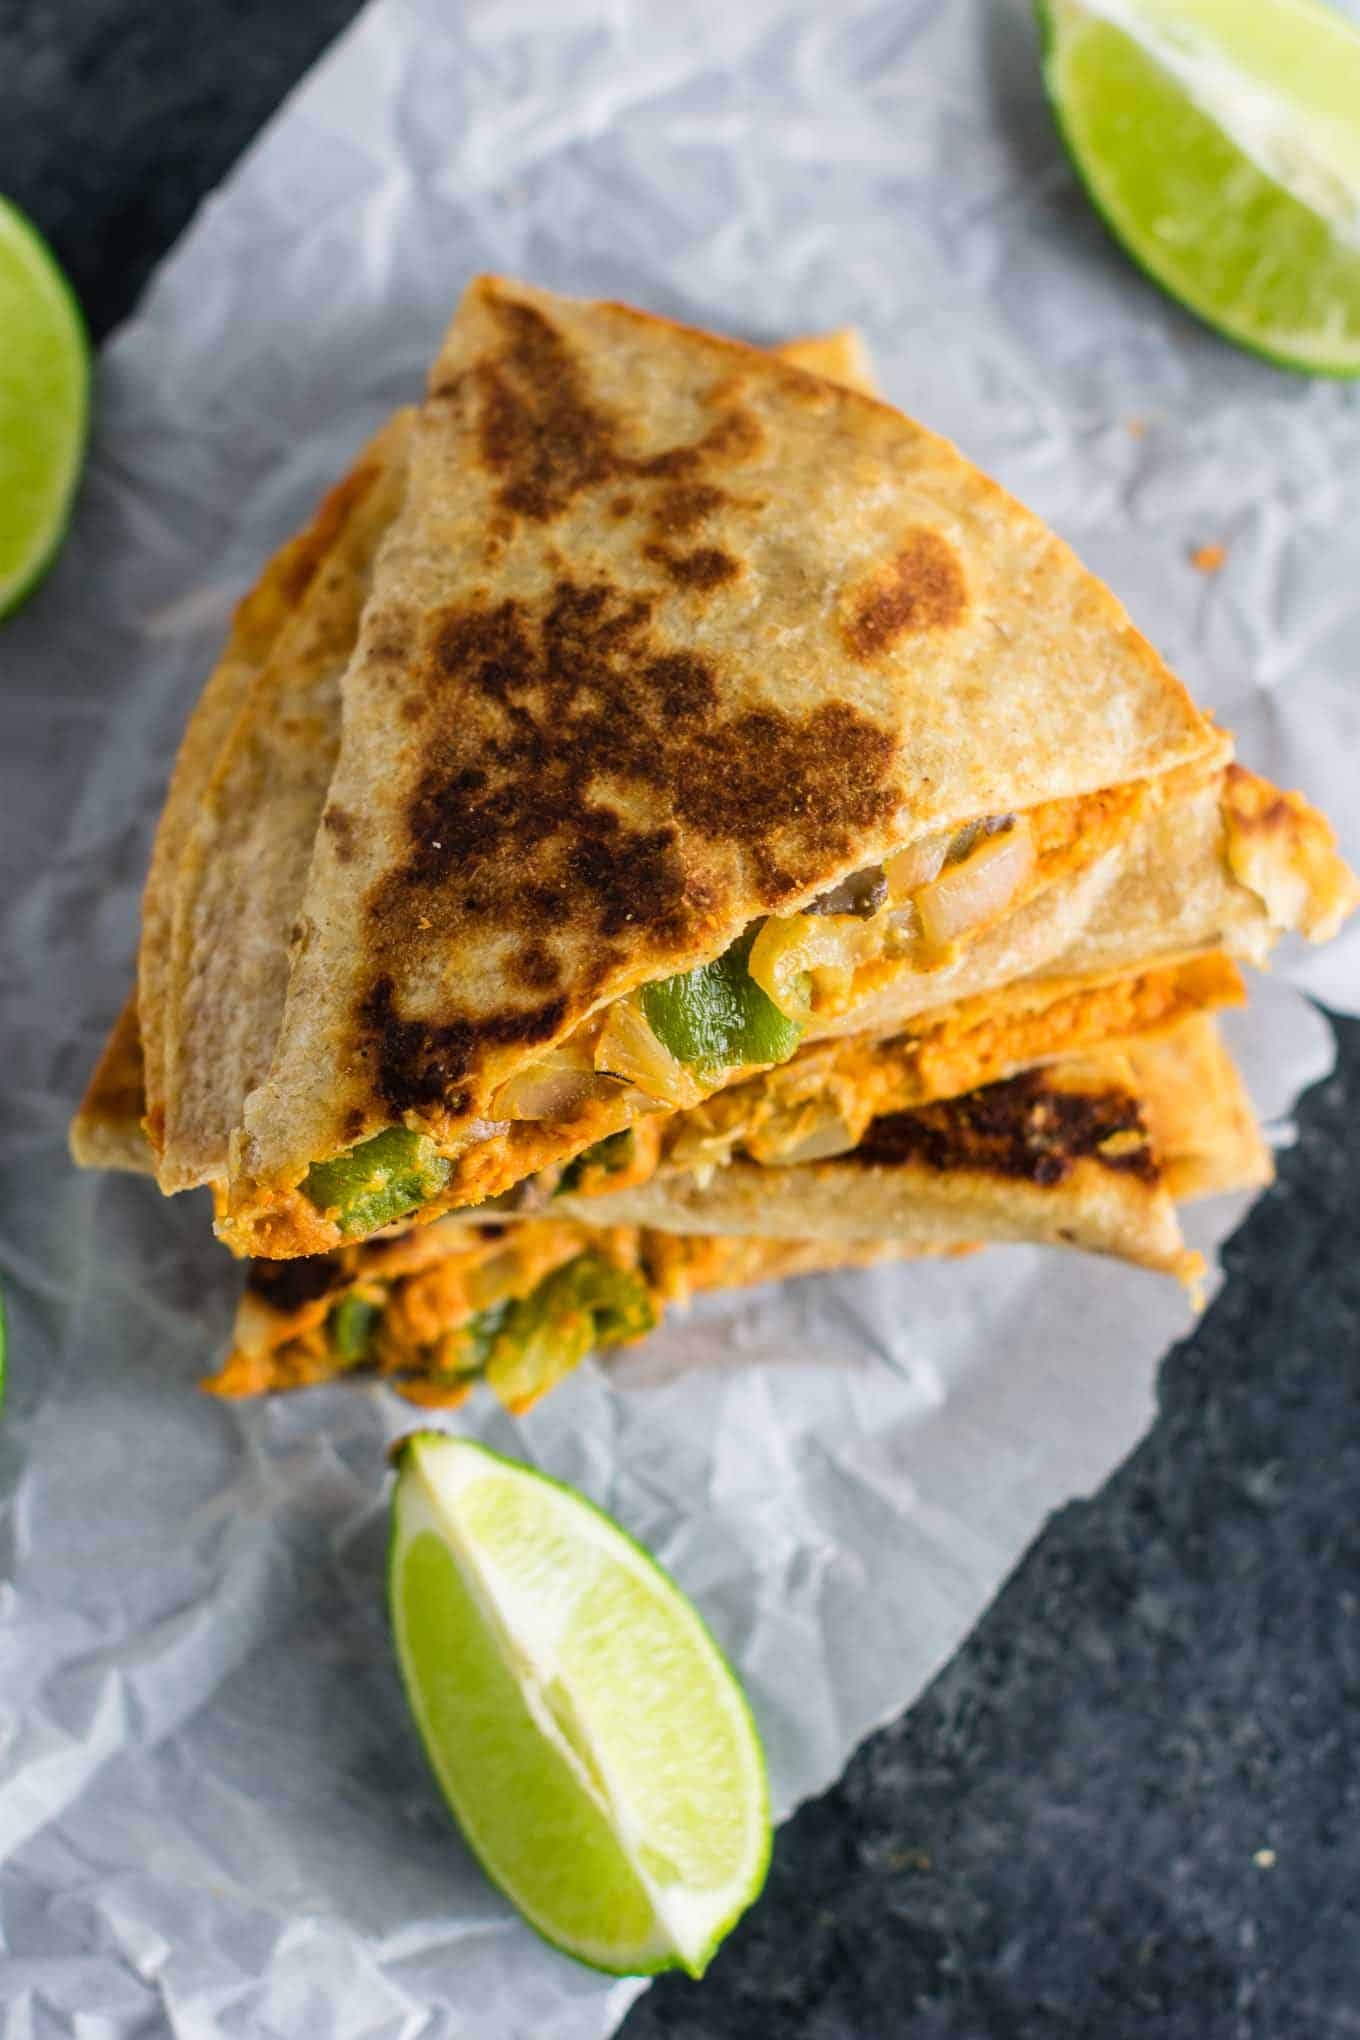 Easy vegan quesadillas recipe packed full of protein and flavor. No meat, no dairy, no vegan cheese! It's a Mexican favorite gone vegan! #vegan #quesadillas #meatless #veganmexican #veganquesadilla #dinner #recipes